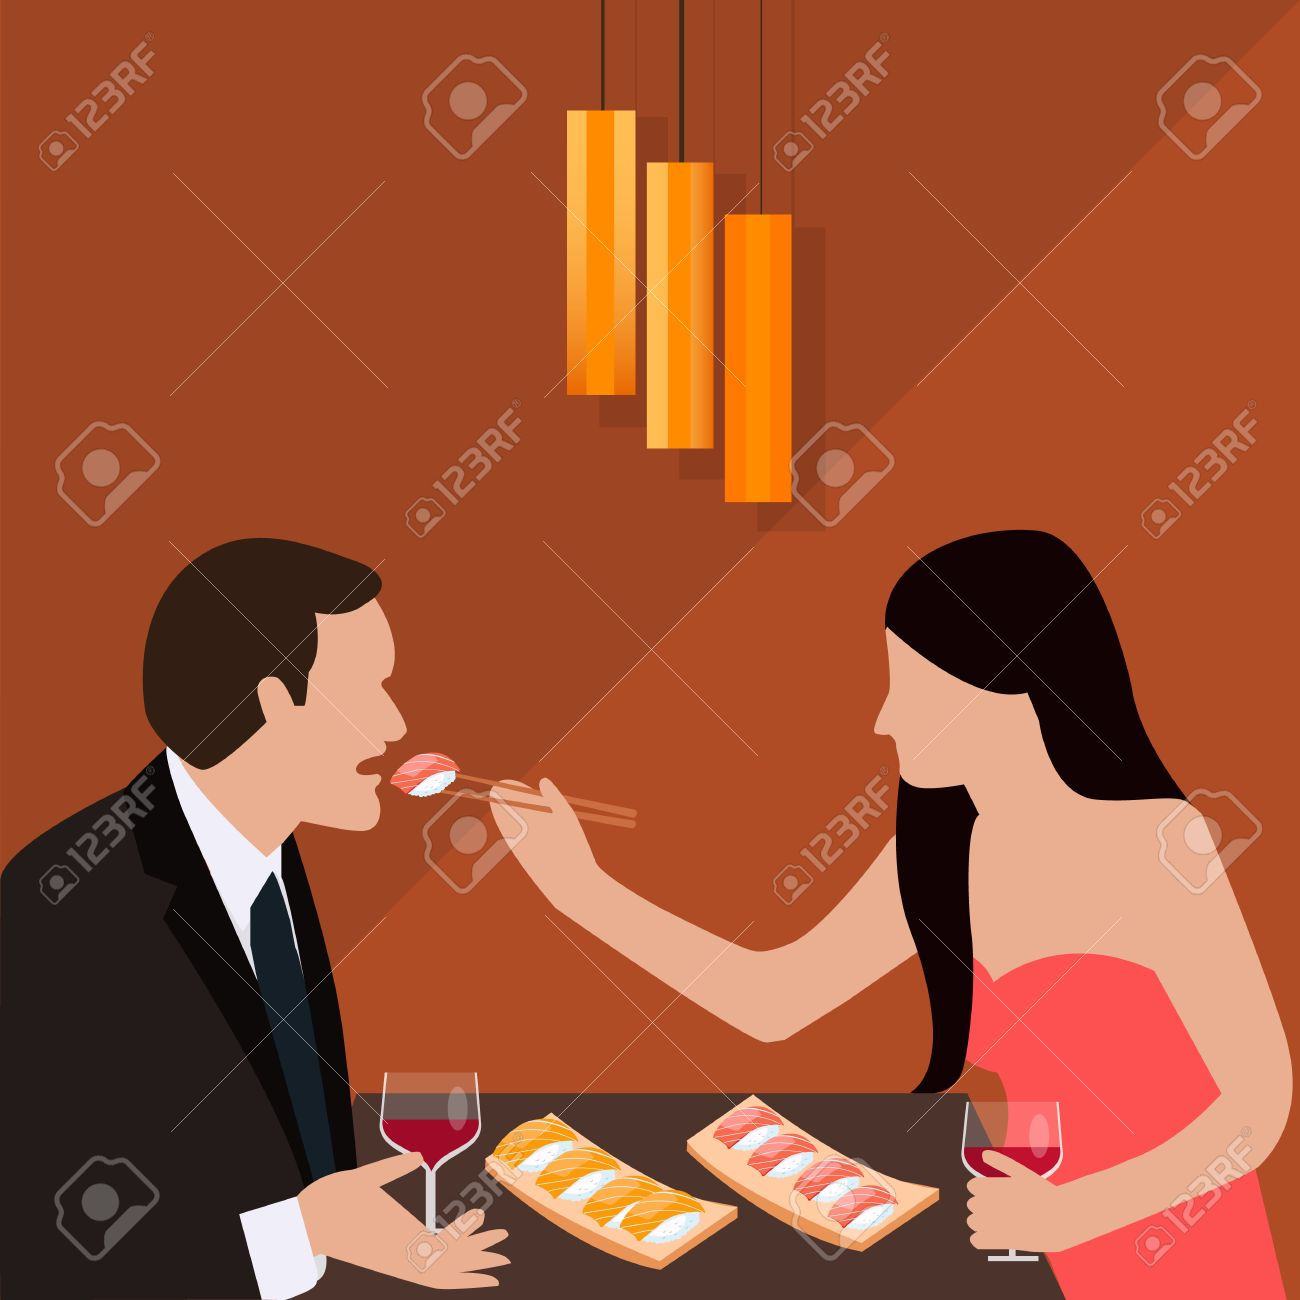 couple dinner woman give food for man romantic sushi eating drink wine glass vector Foto de archivo - 53663220